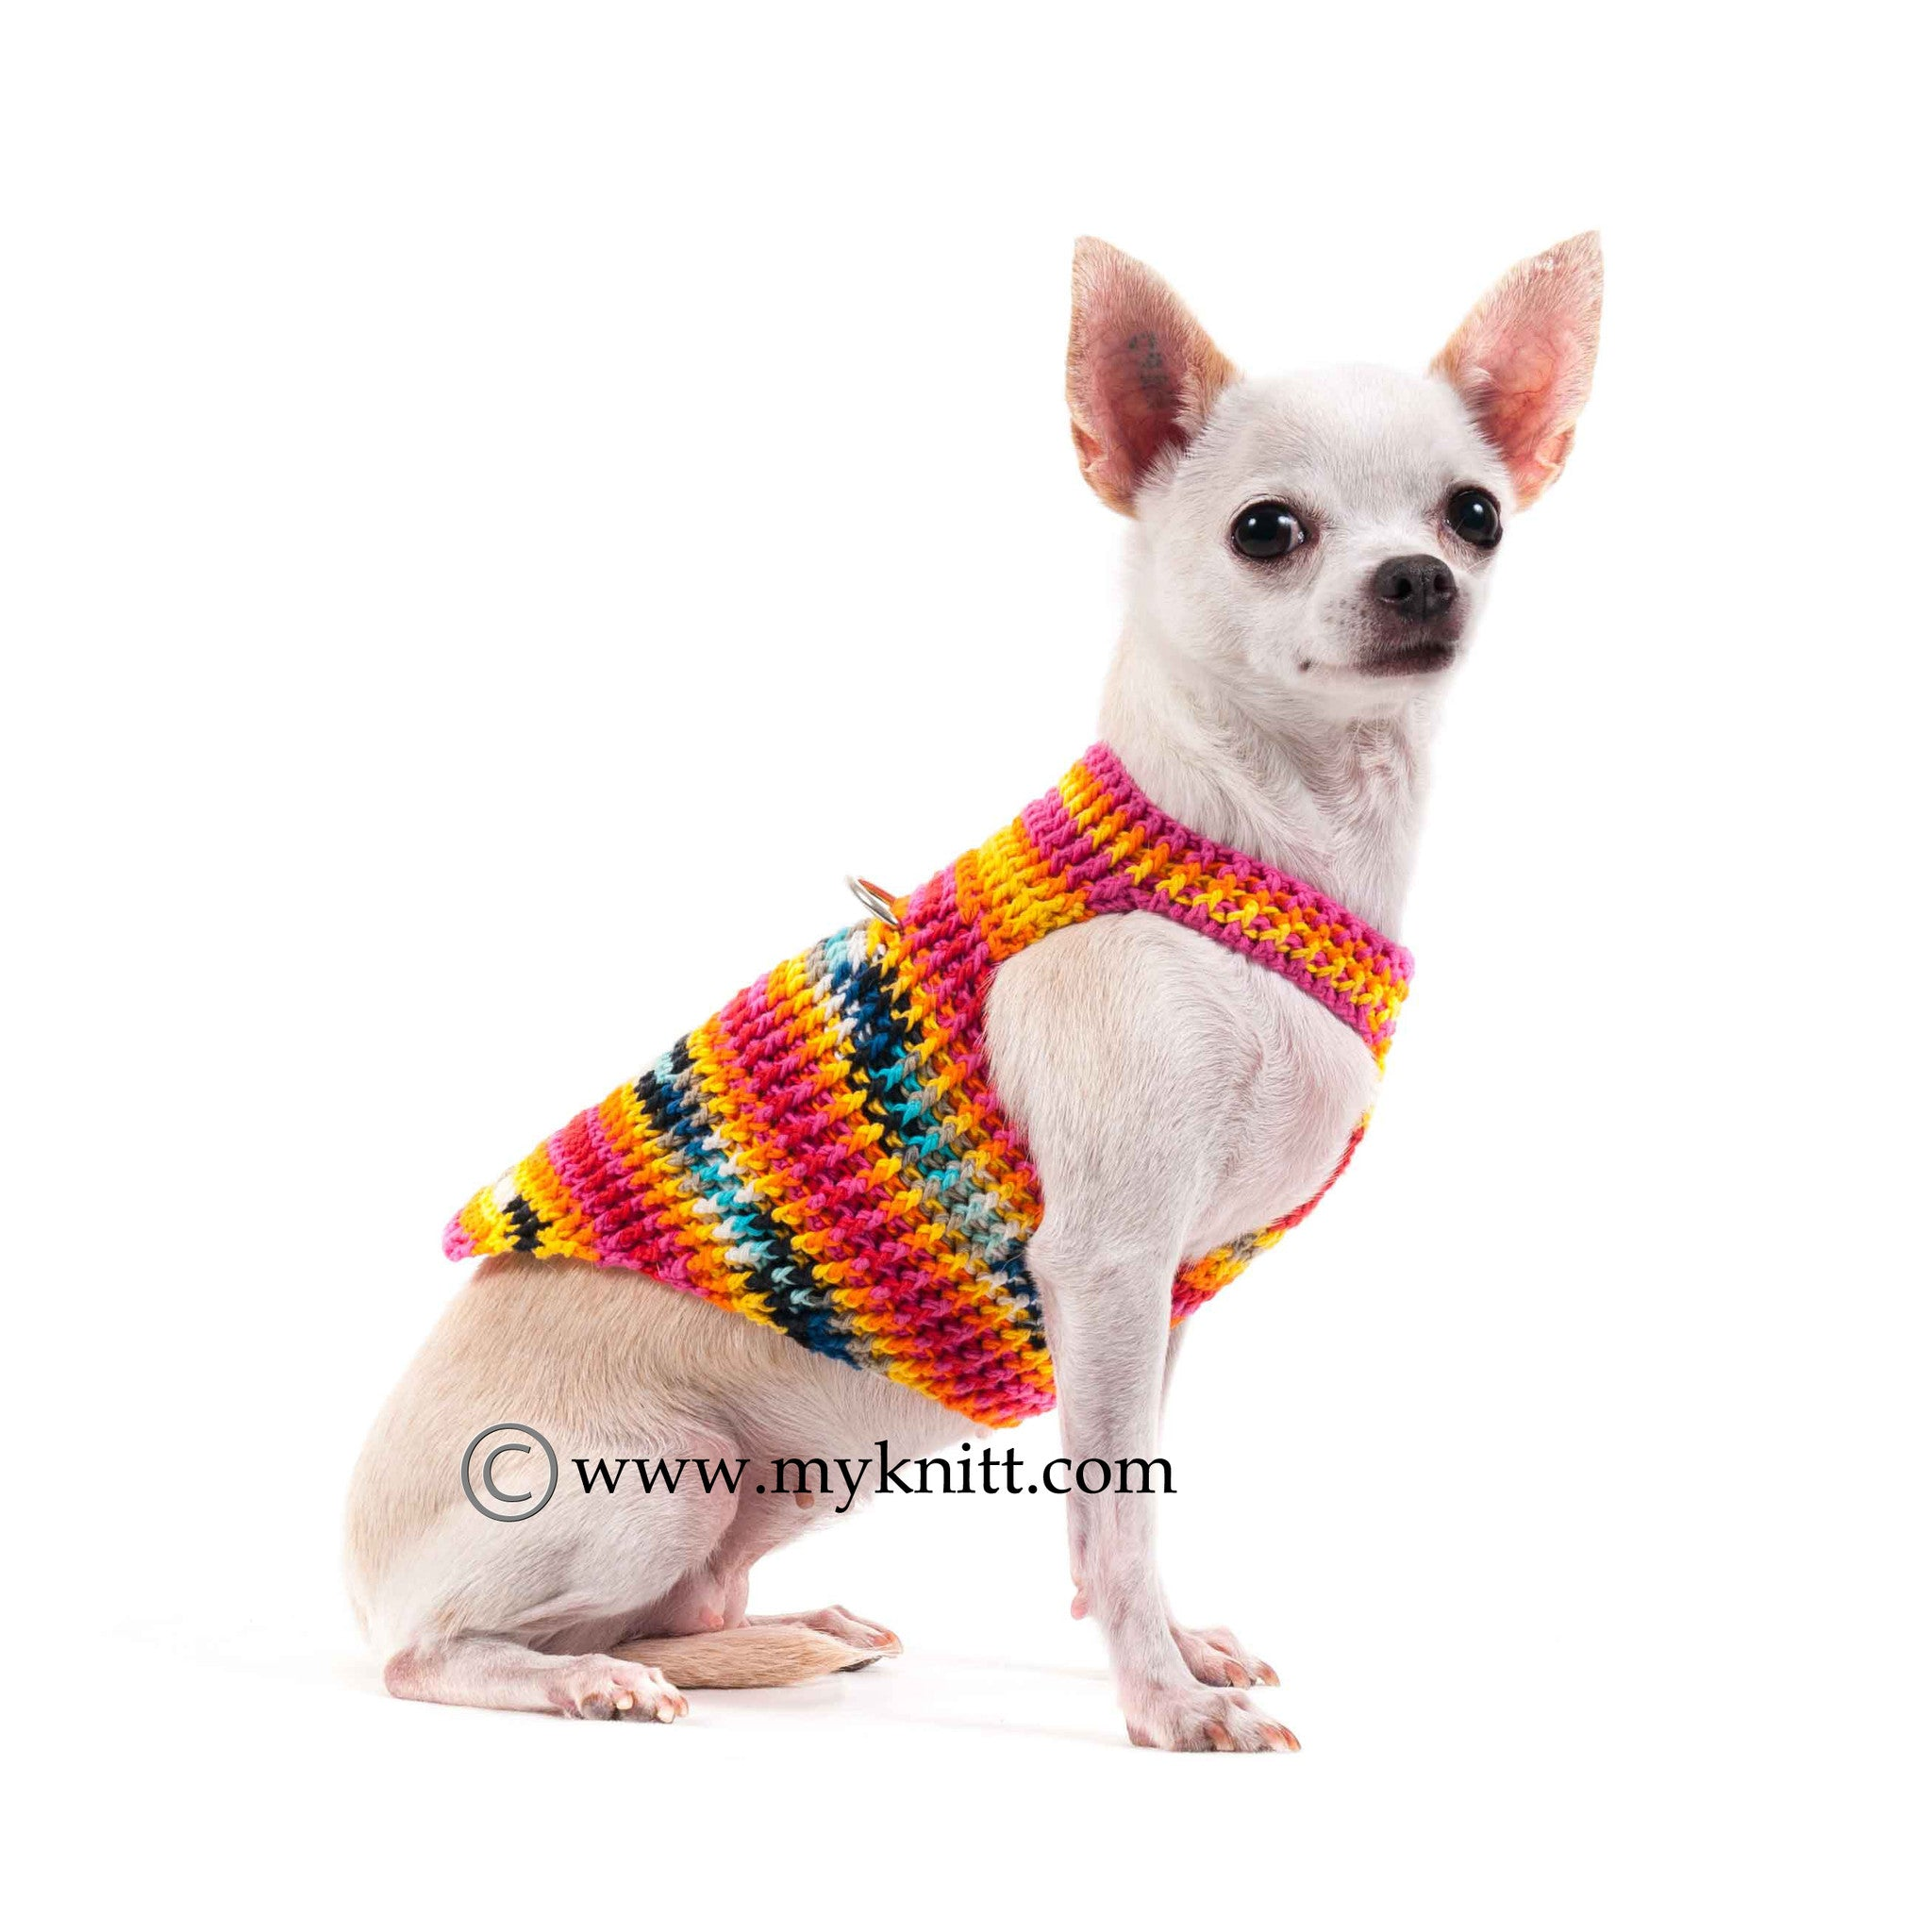 DH47_3_2048x2048?v=1455028423 colorful cotton dog harness comfortable choke free hand crochet dh47